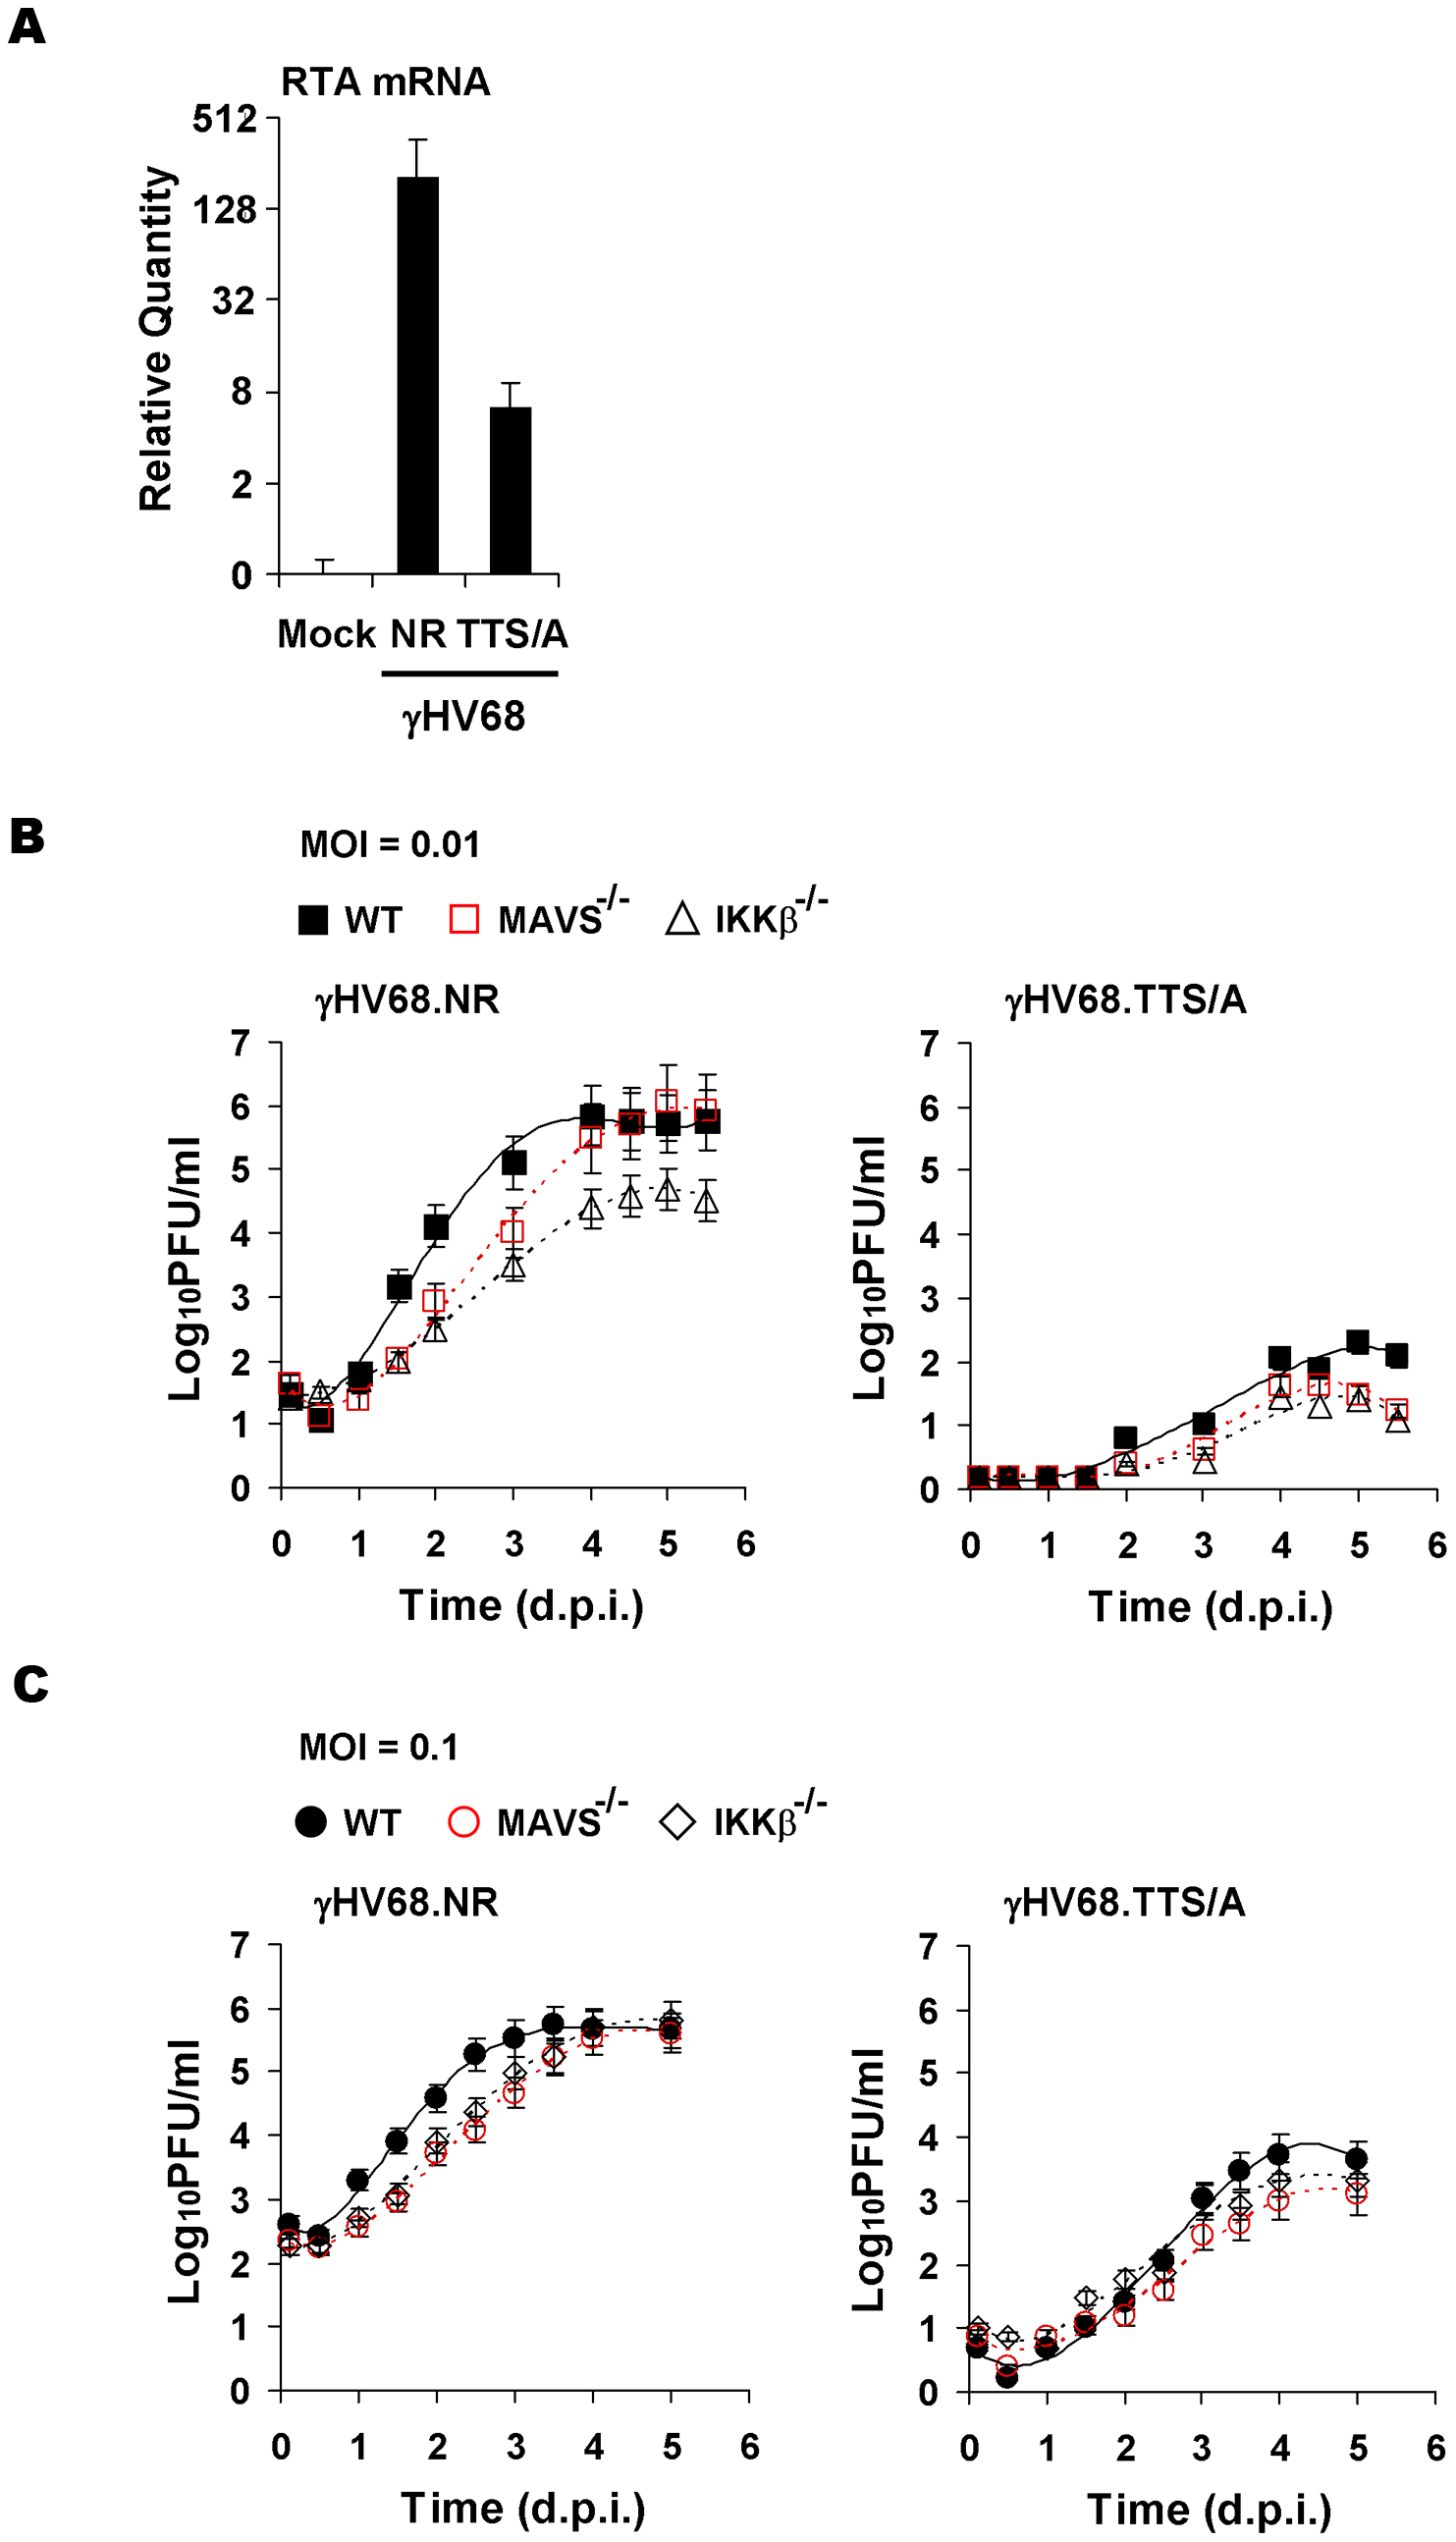 Impaired lytic replication of recombinant γHV68 carrying the TTS/A mutation.